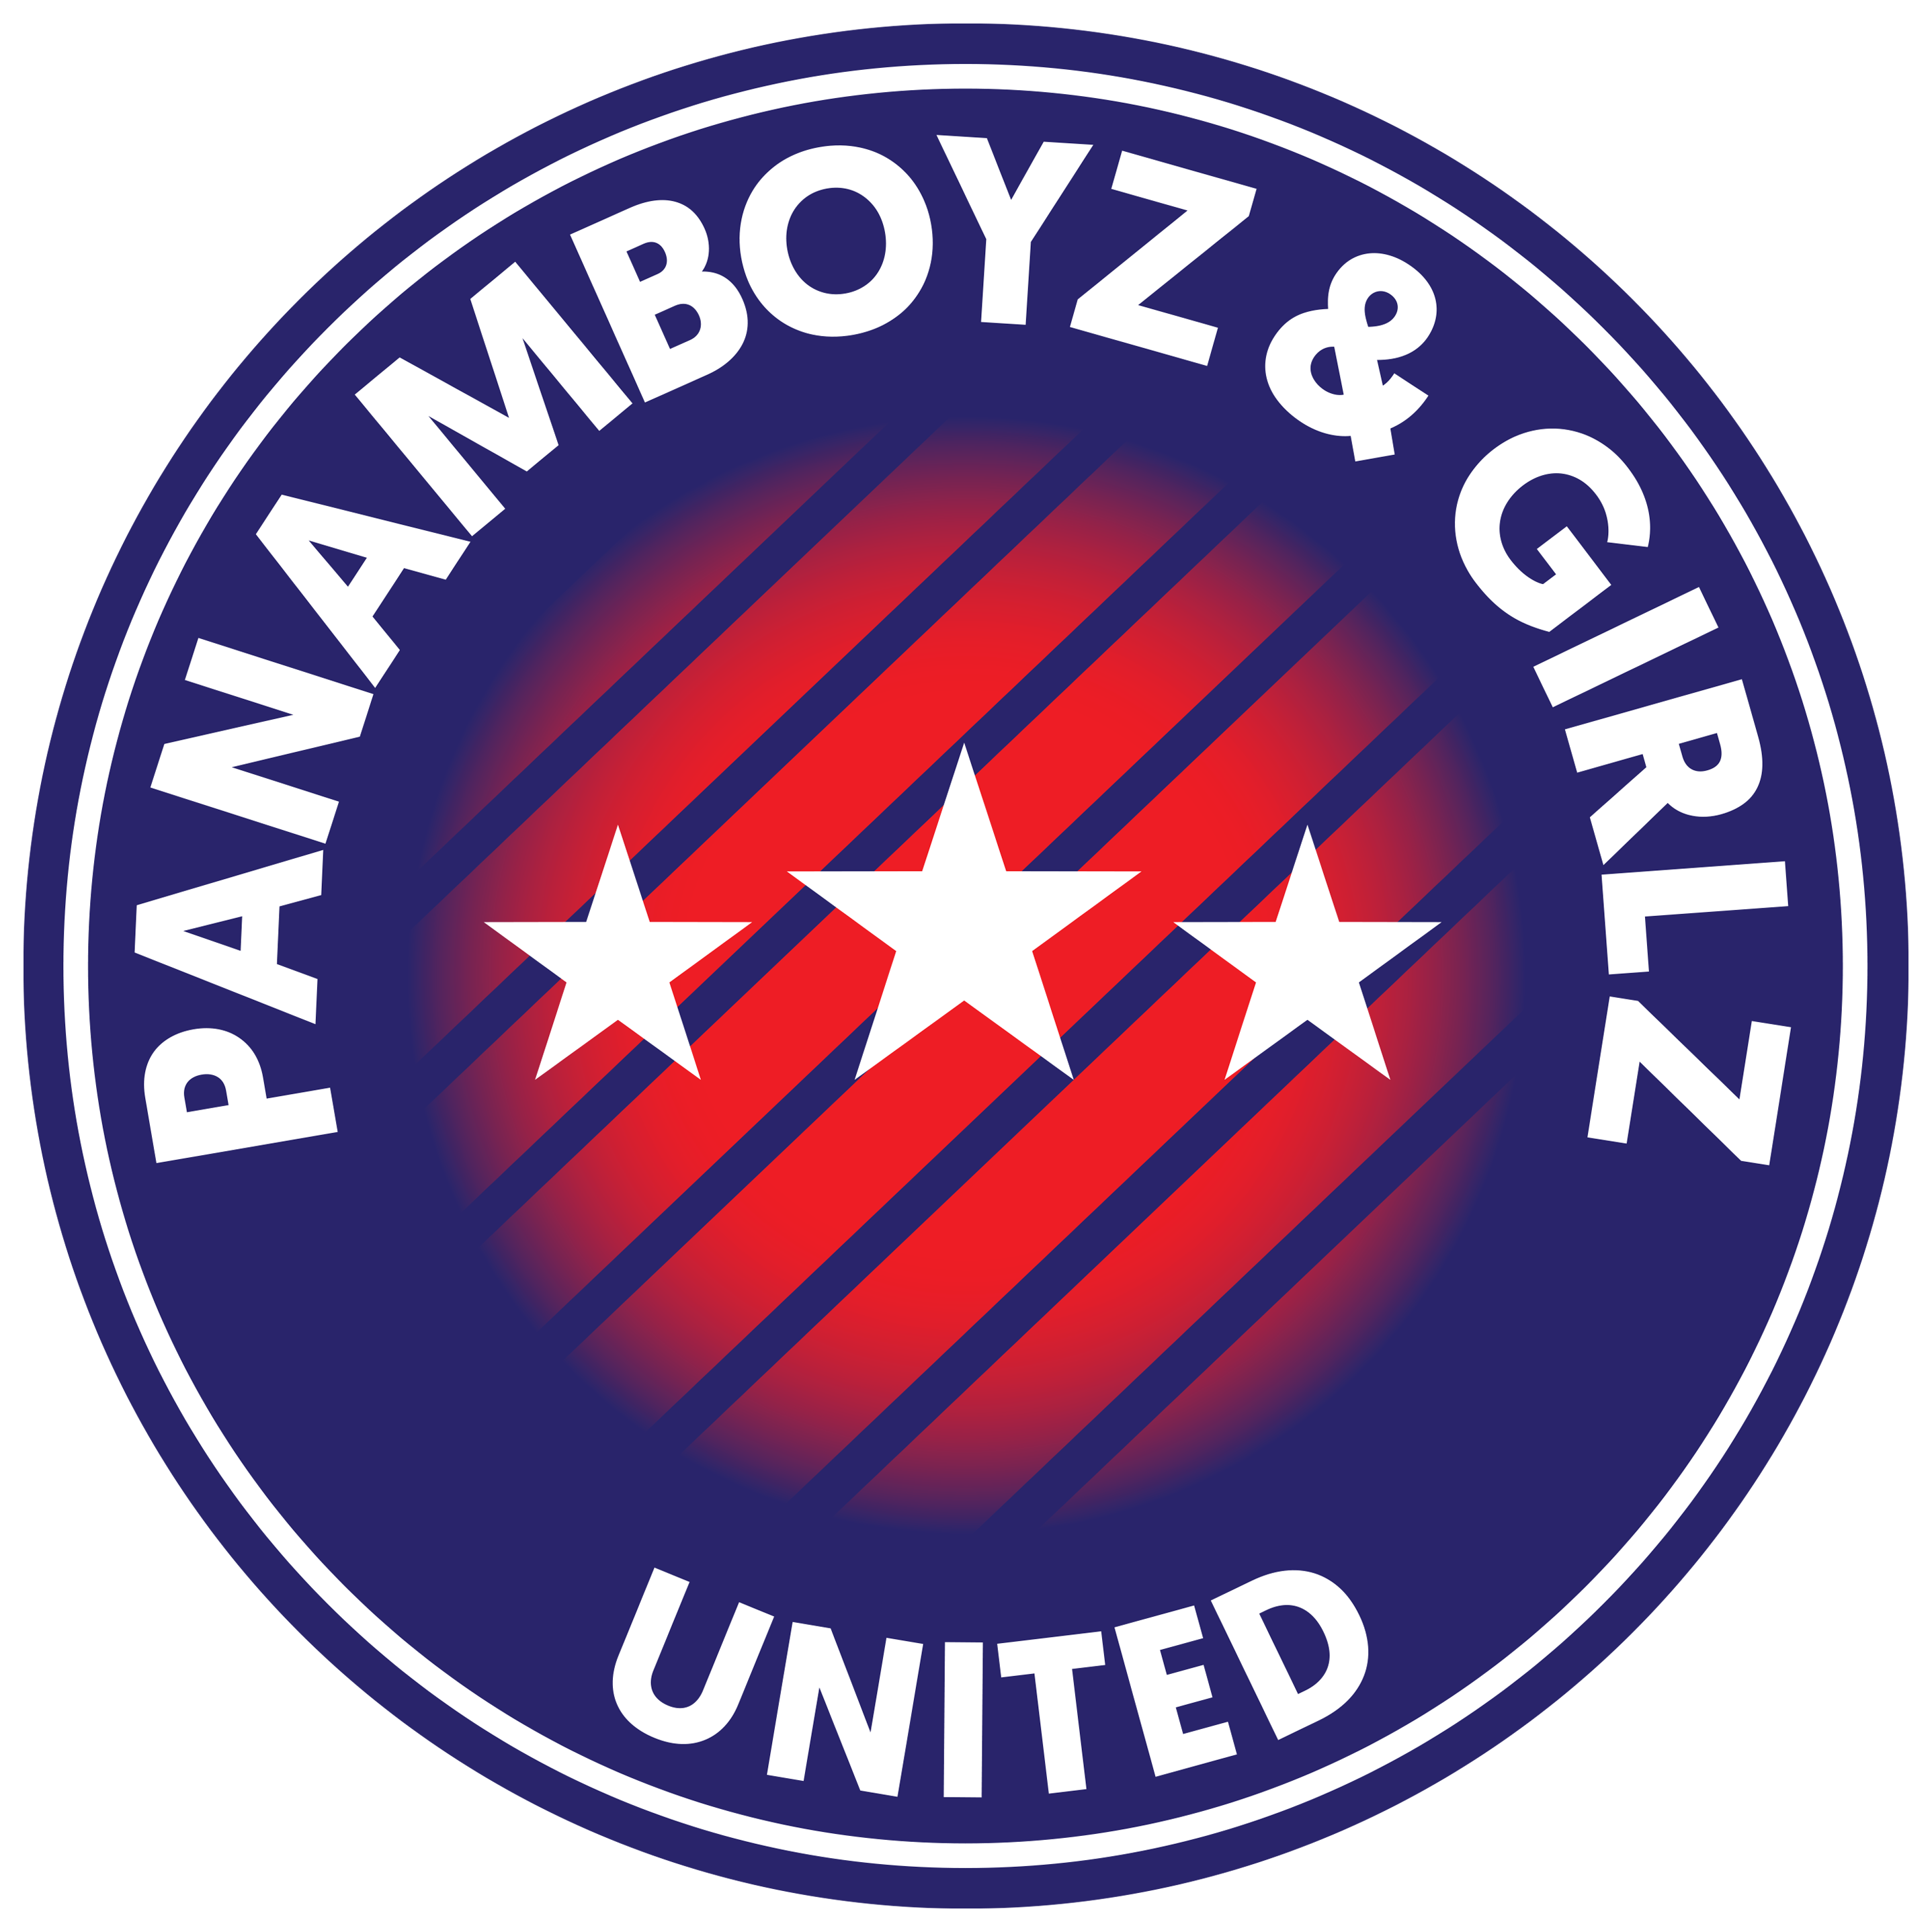 Panamboyz and Girlz United, Partenaire Officiel Sportif